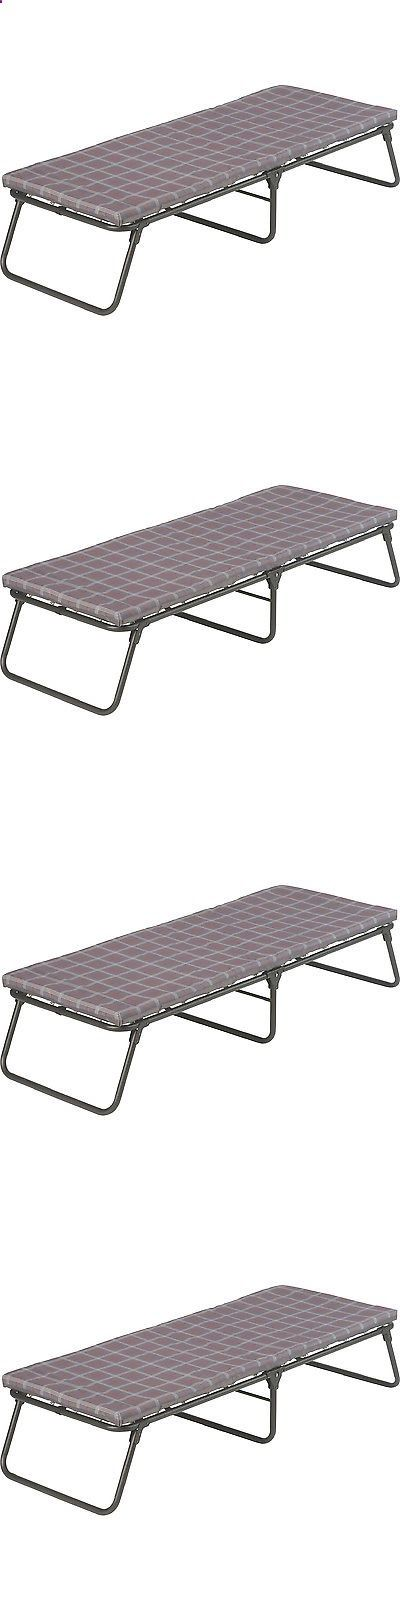 Cots 87099: Comfortsmart Camping Cot Portable Folding Sleeping Bed Outdoor Mattress -> BUY IT NOW ONLY: $98.08 on eBay!